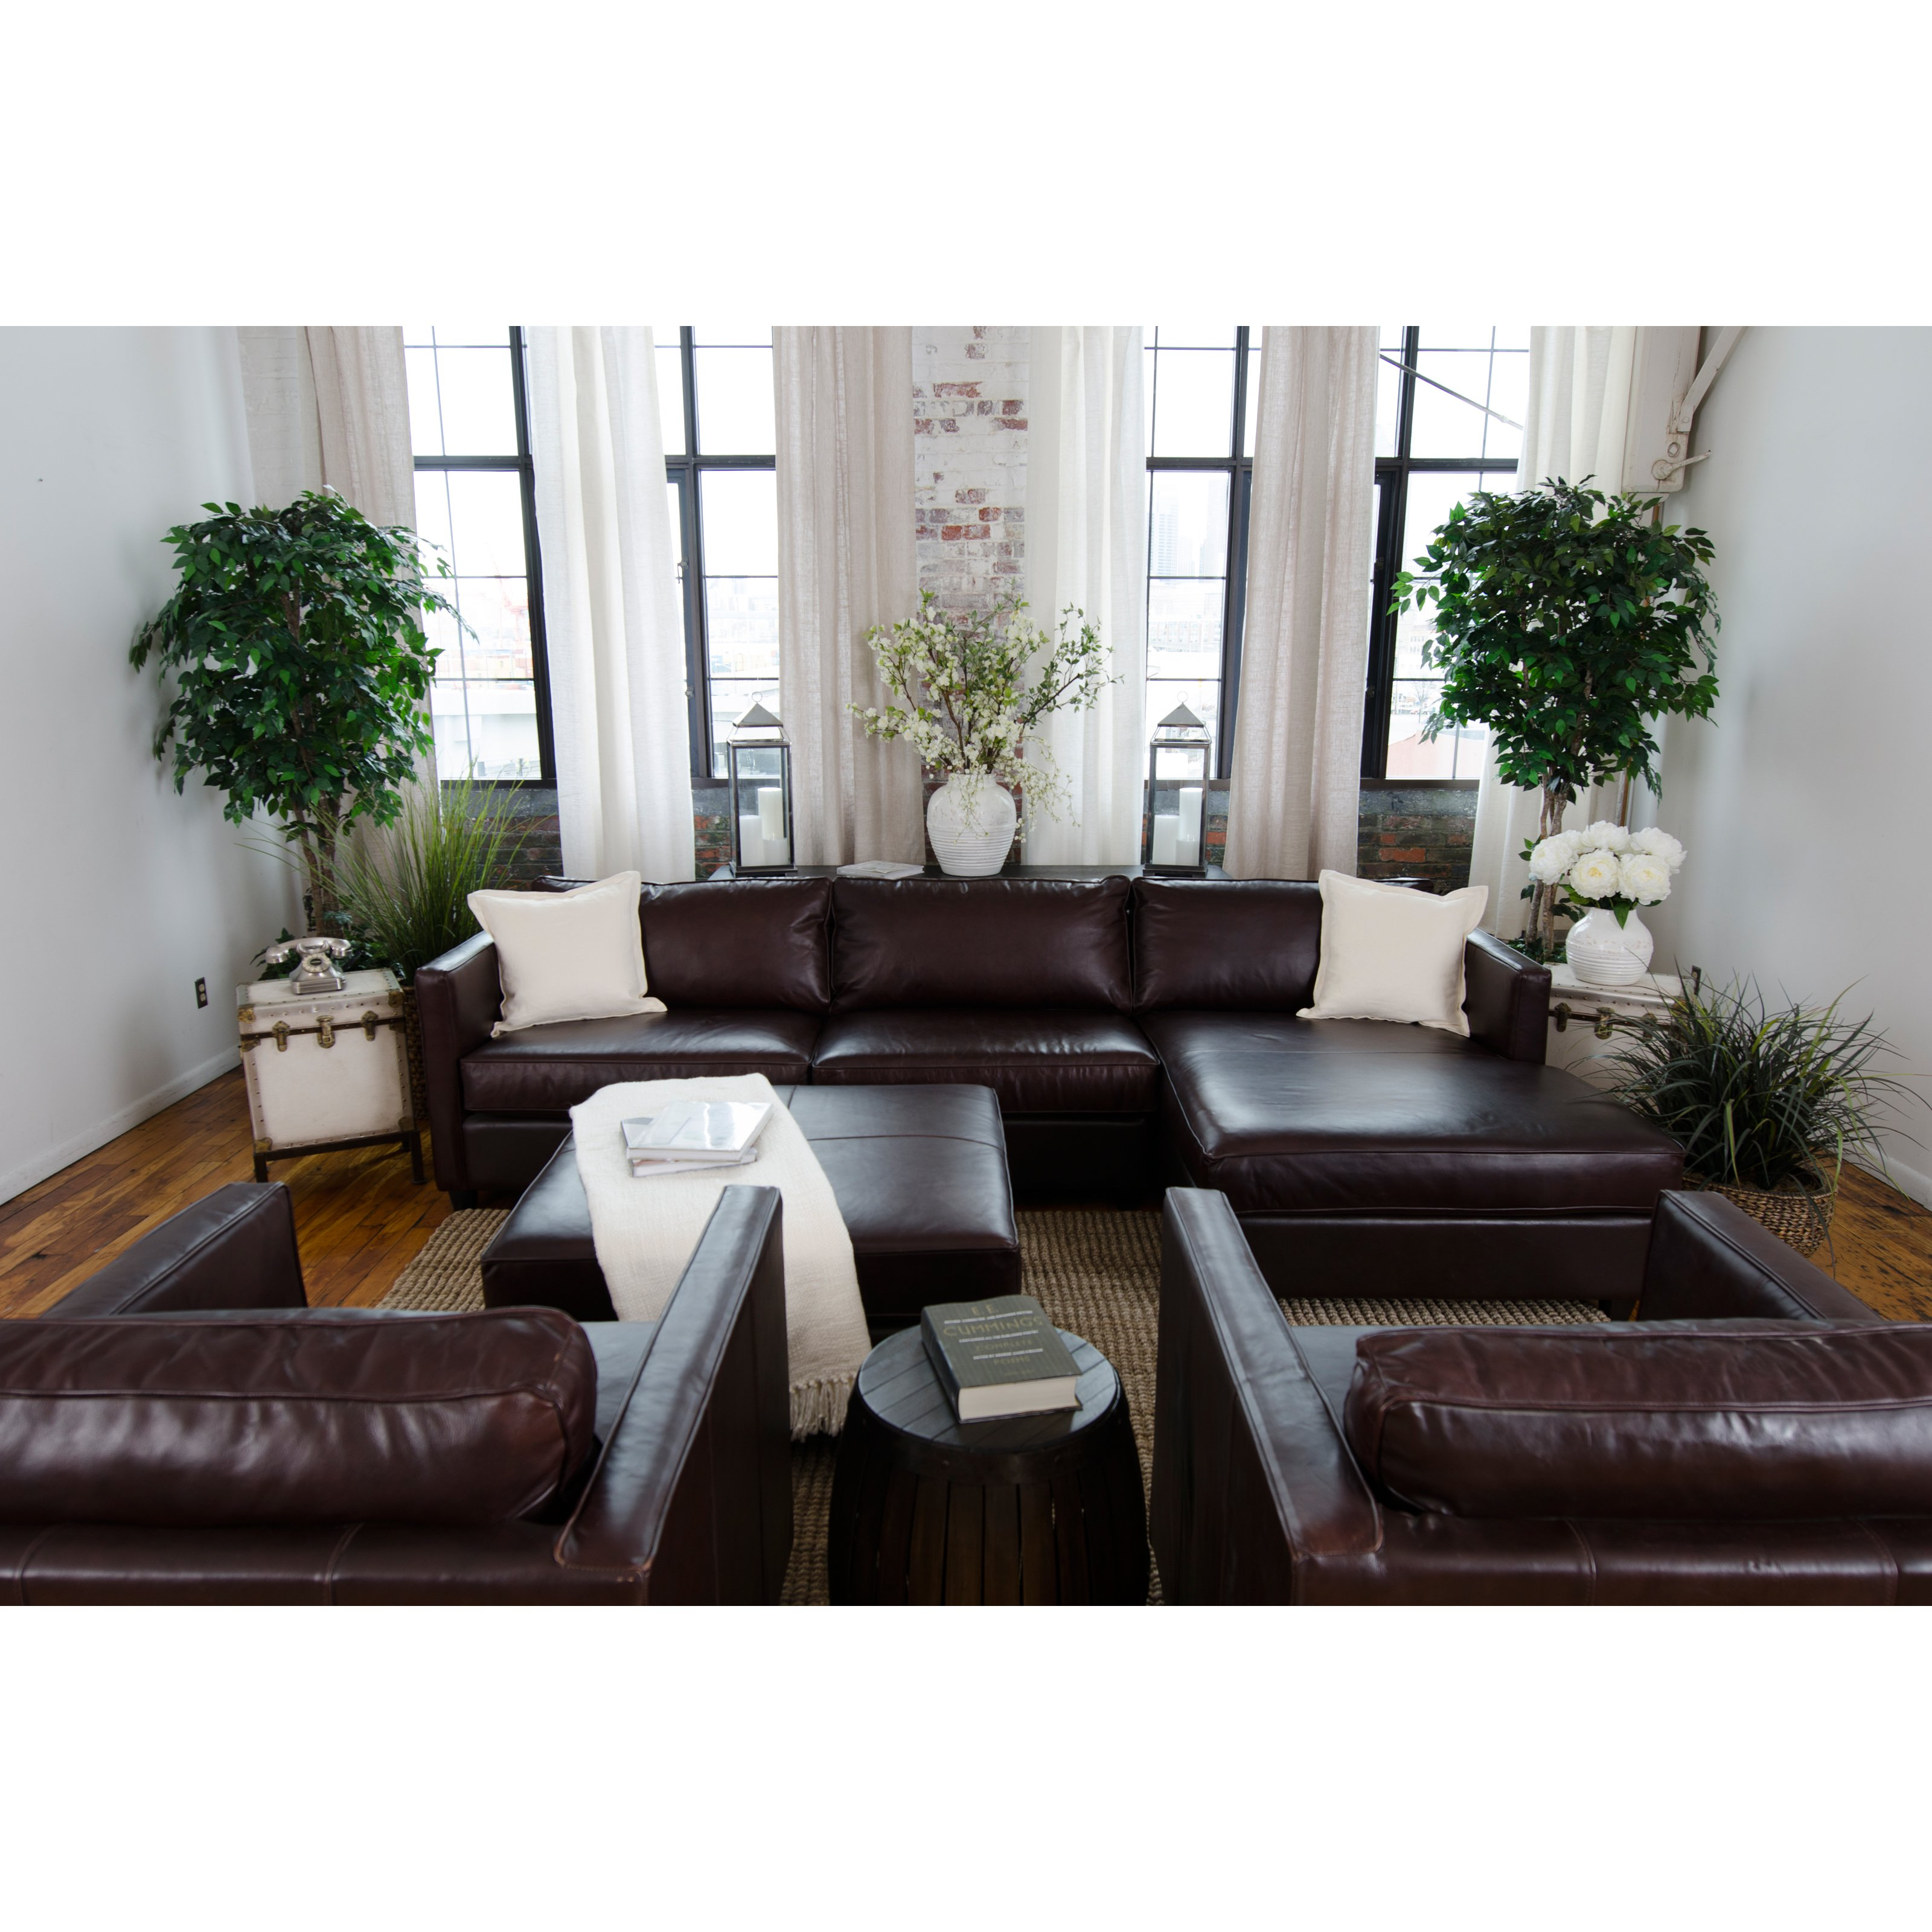 5-Pc Upholstered Sectional Set